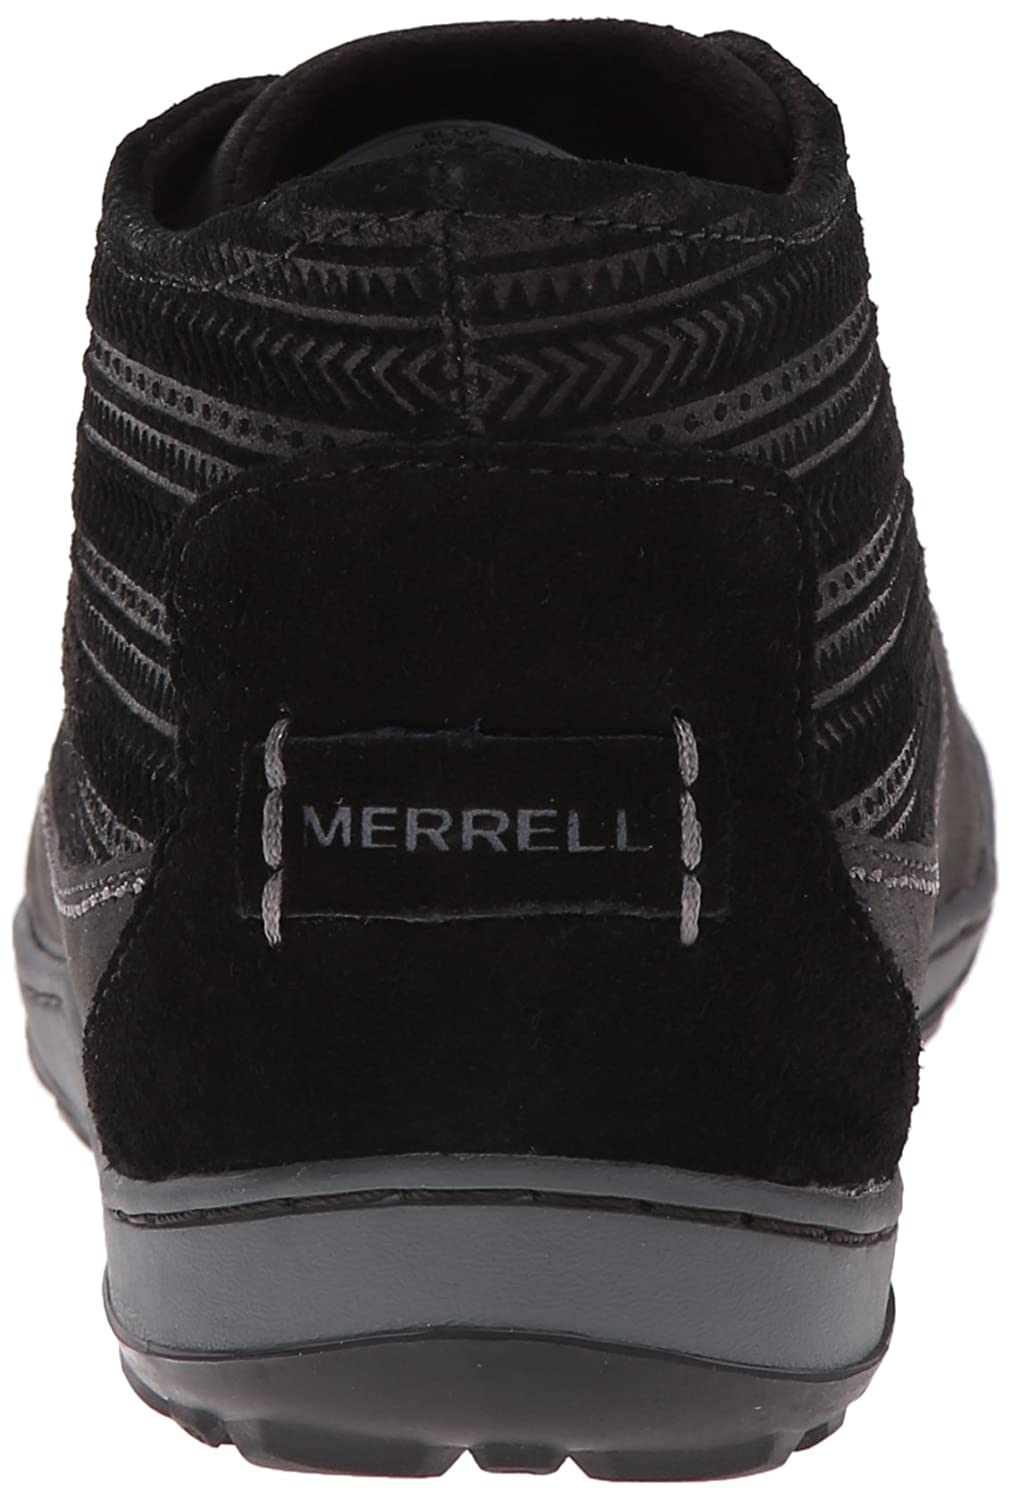 Merrell Boot Women's Ashland Chukka Boot Merrell B00RDQJ8IE 7 B(M) US|Black 987934